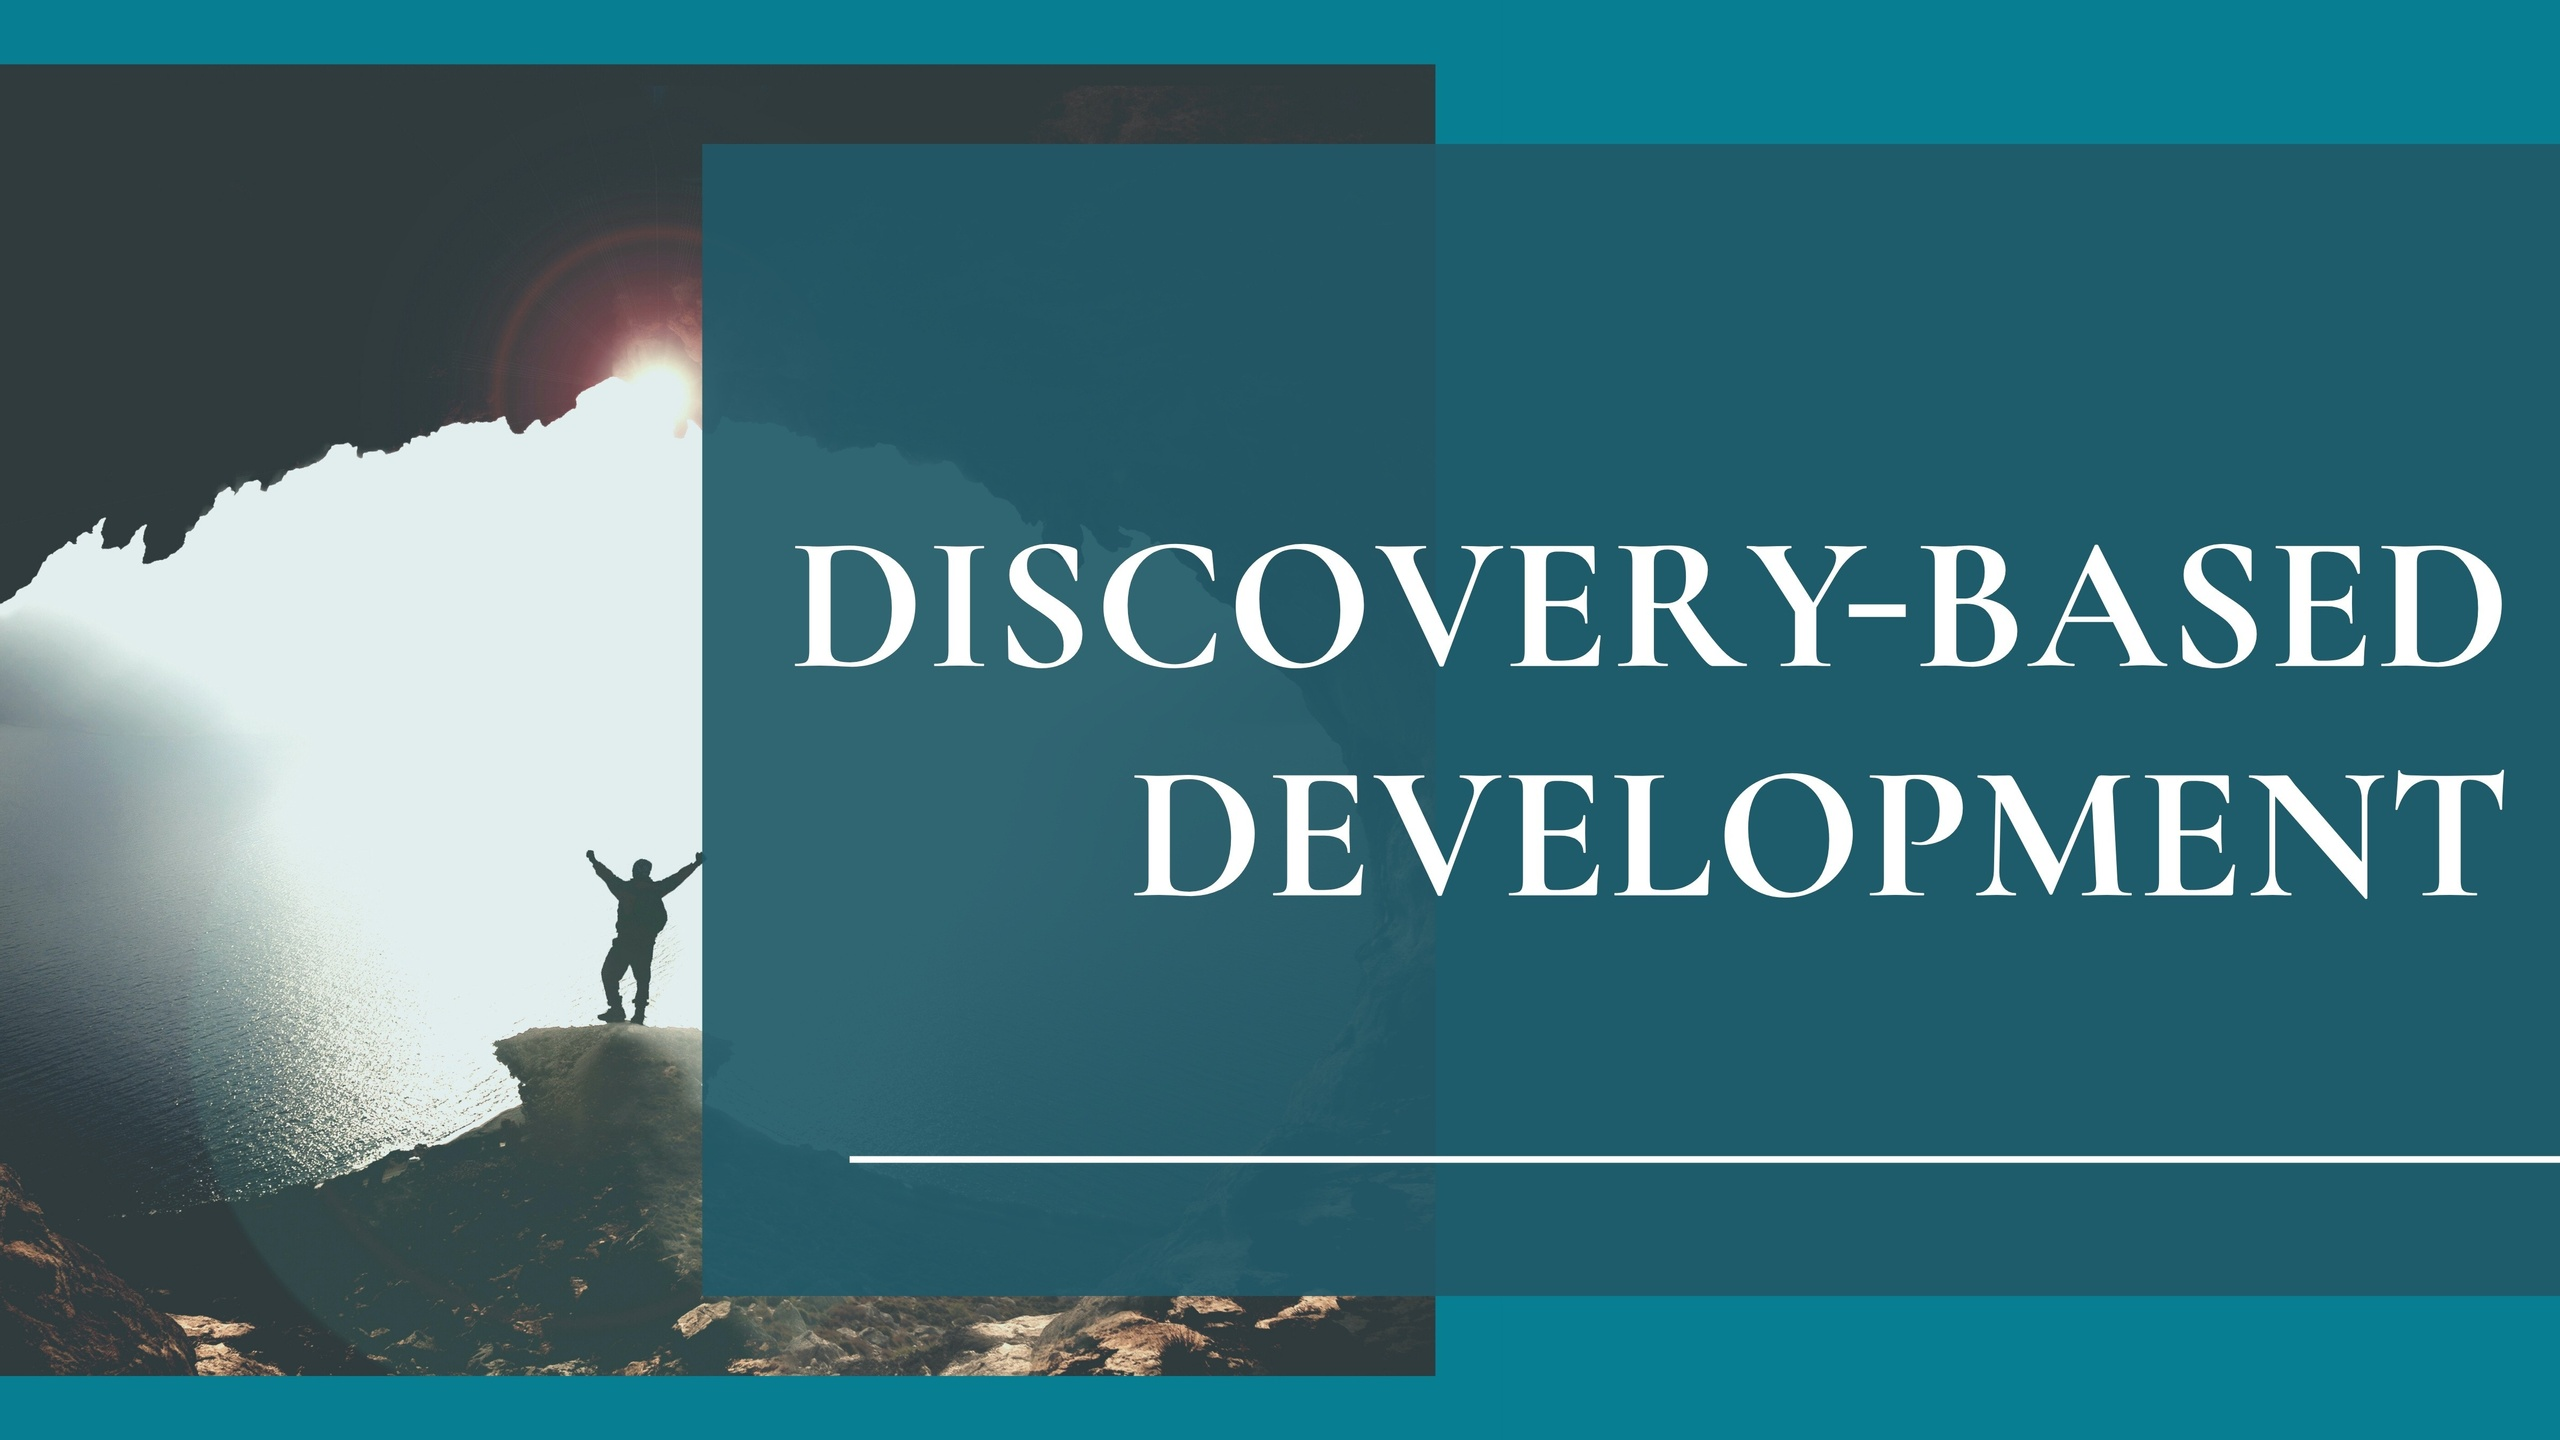 Discovery-Based Development